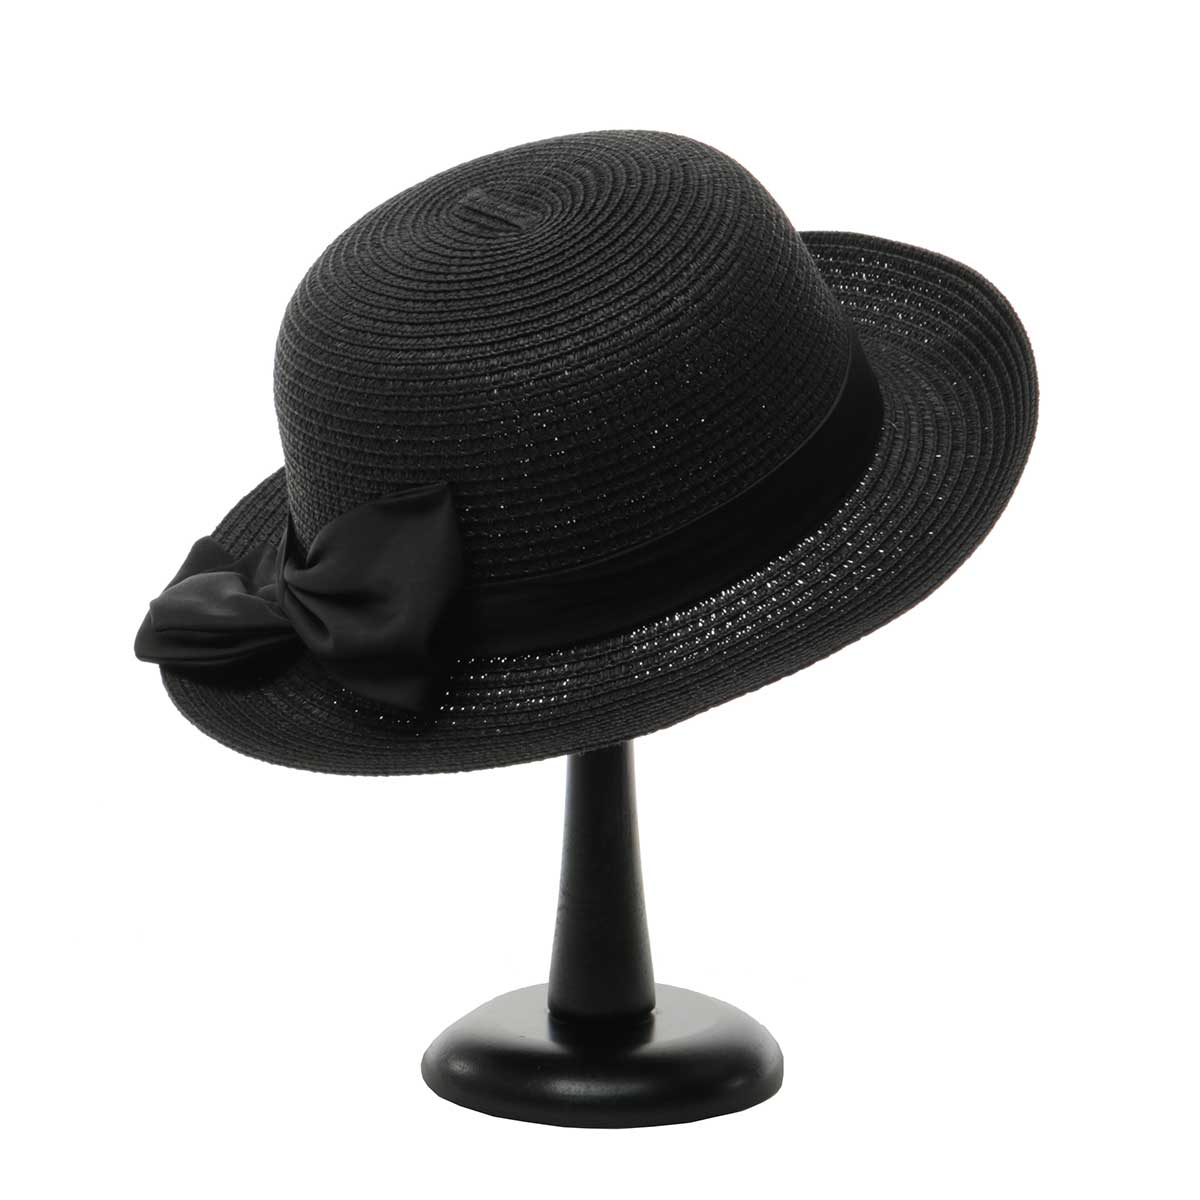 Black British Sun Hat with Tie Trim